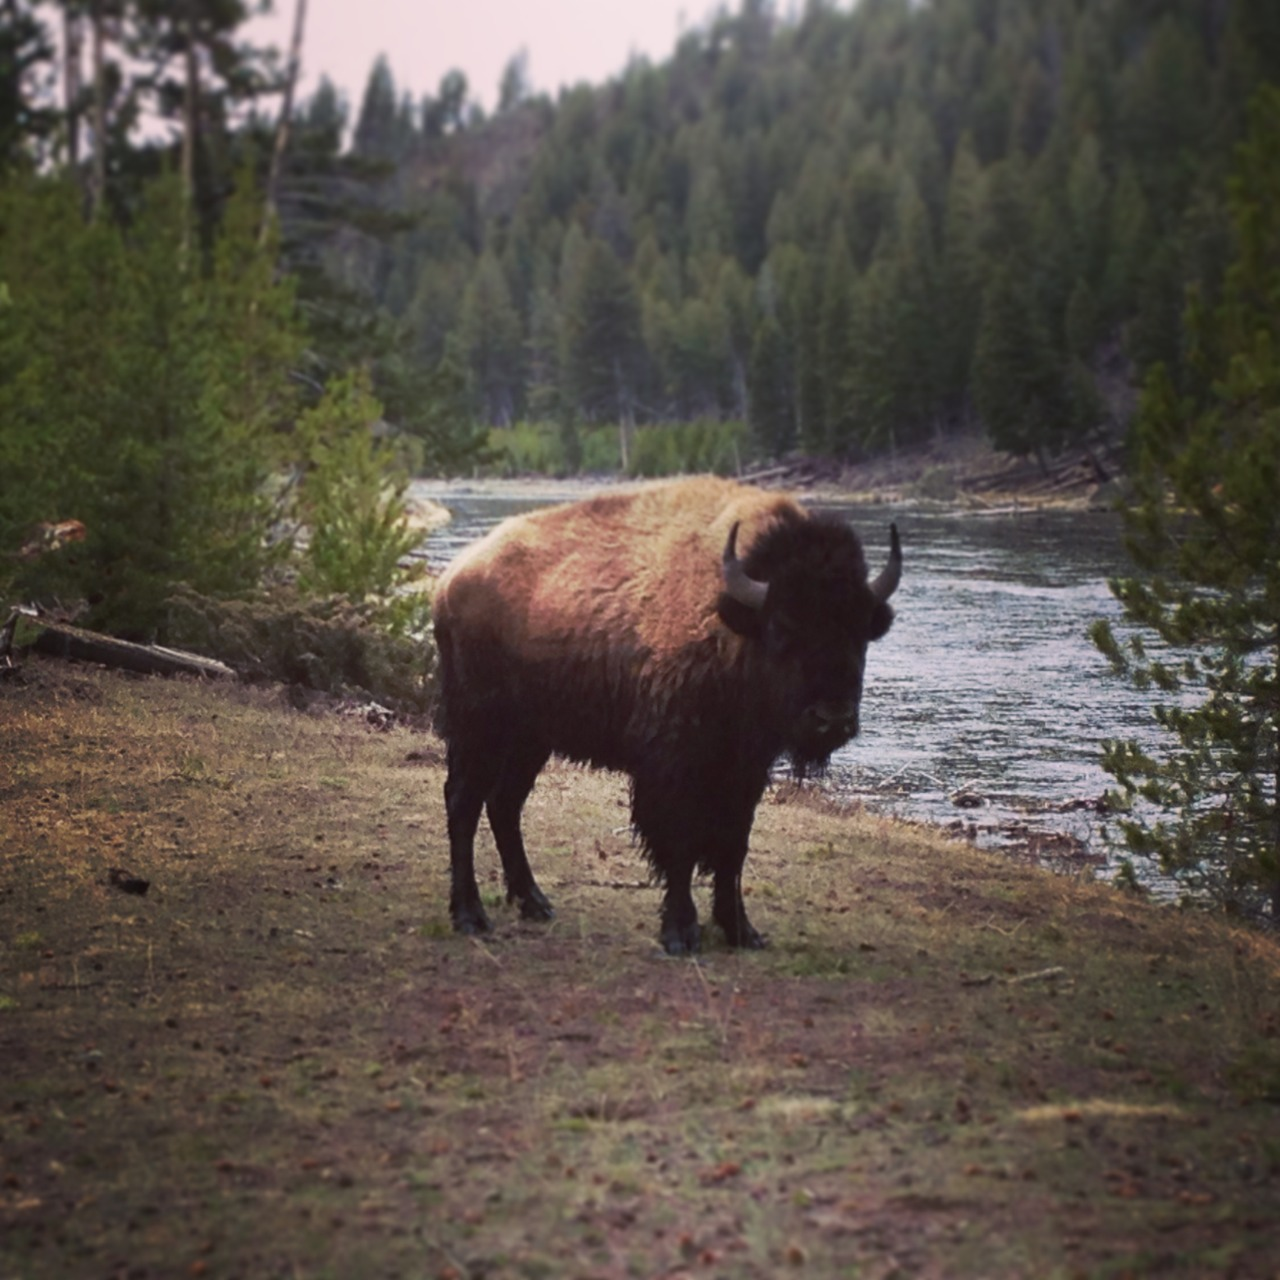 A fluffy buffalo crossed the river to say hello!